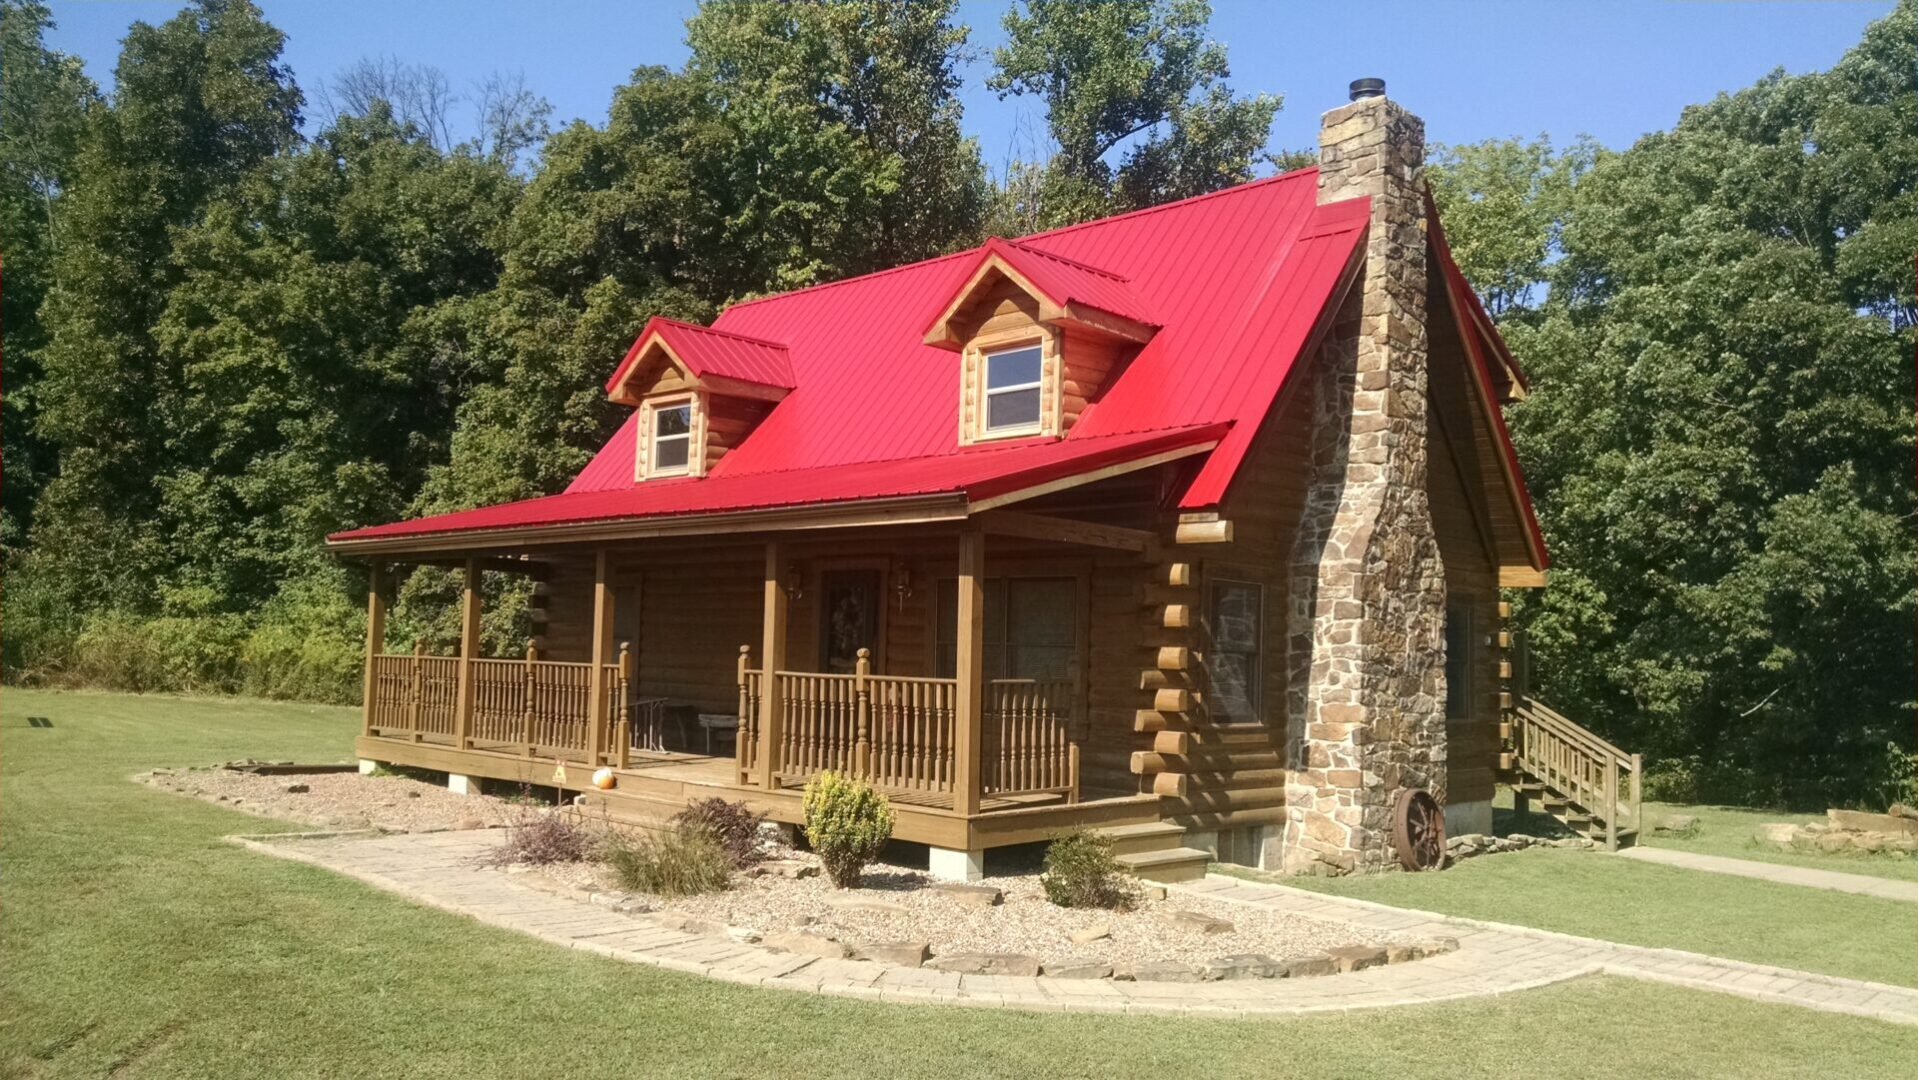 A cabin with a red roof